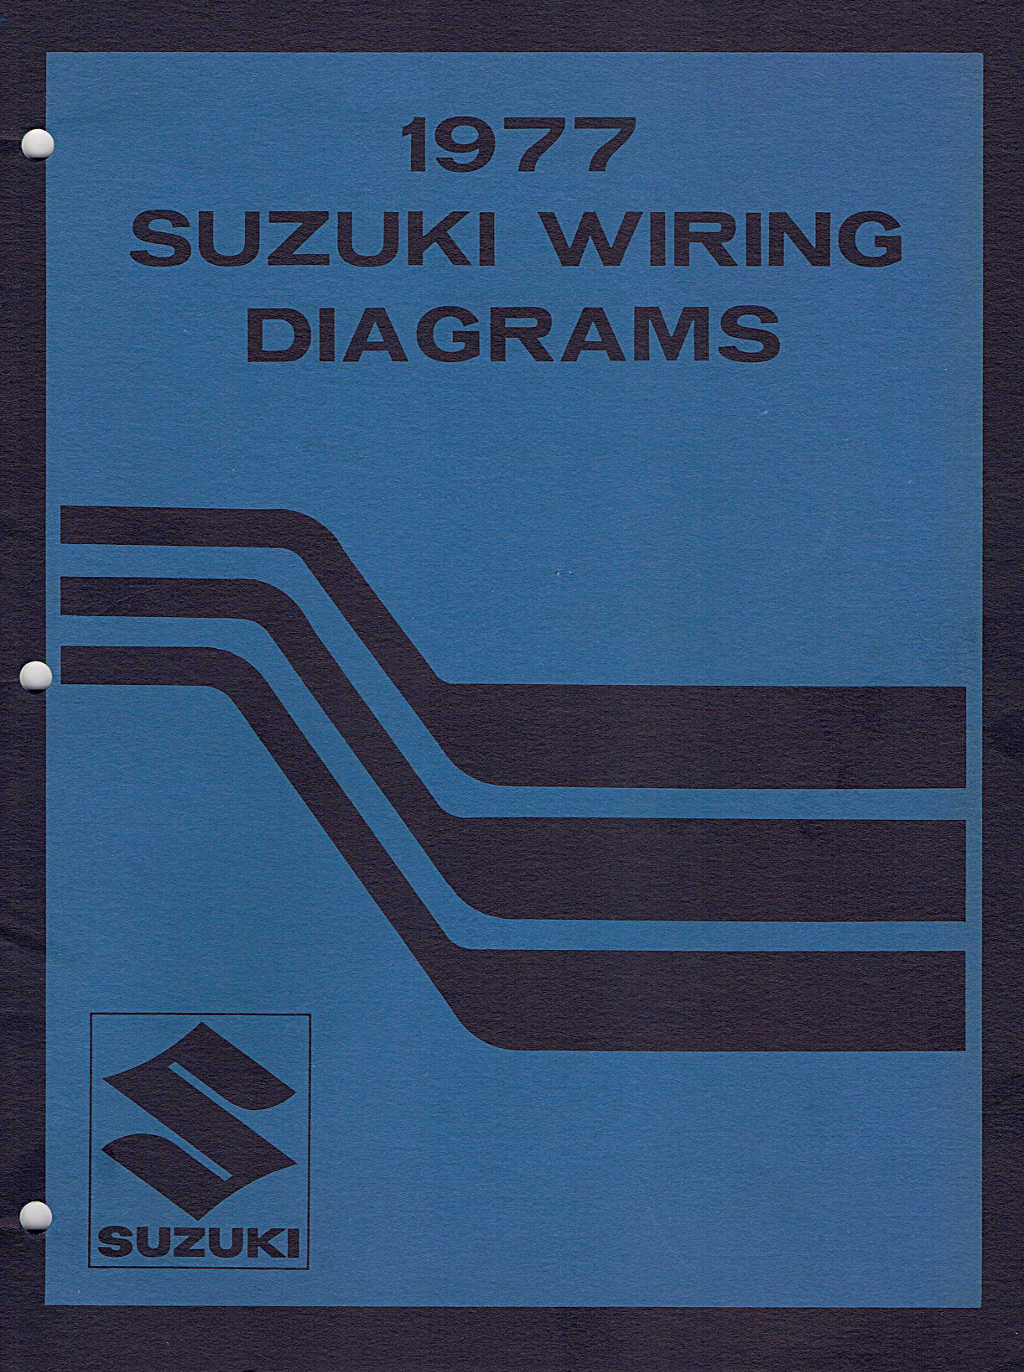 hight resolution of this is a selection of wiring diagrams that i have gathered together in one location just for ease of reference i don t sell them nor do i supply them for